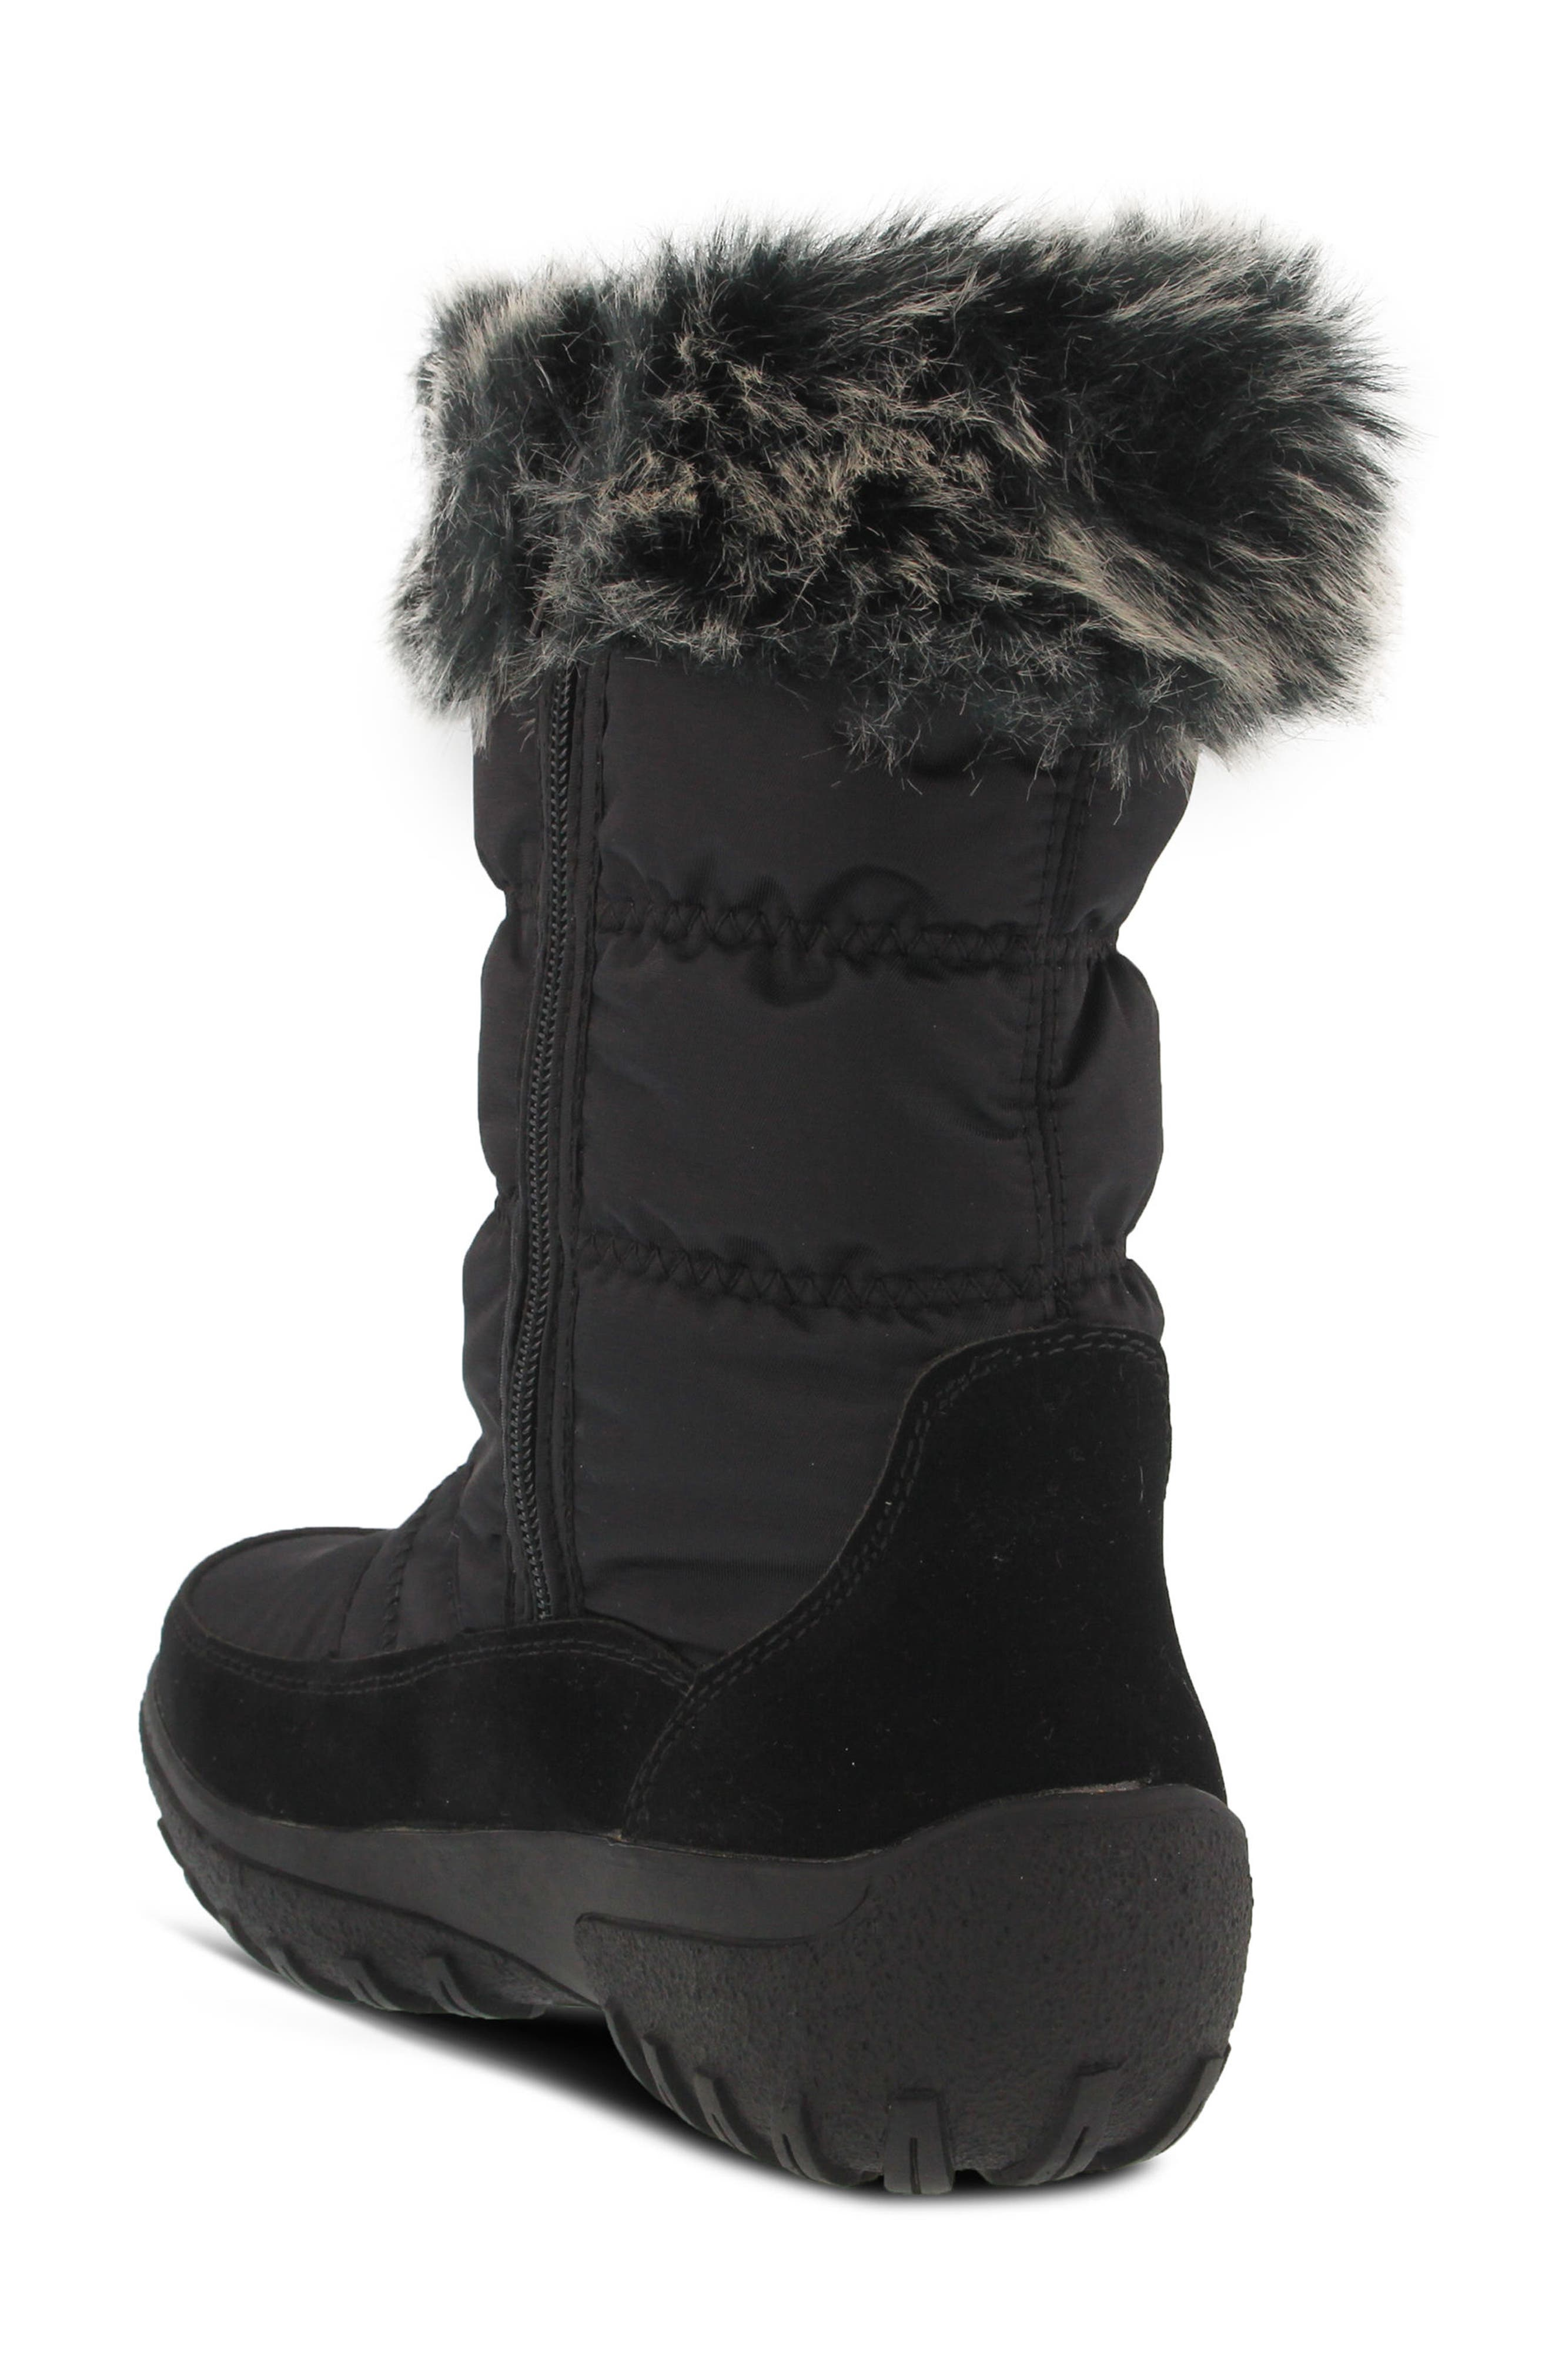 Rolim Faux Fur Trim Waterproof Boot,                             Alternate thumbnail 2, color,                             Black